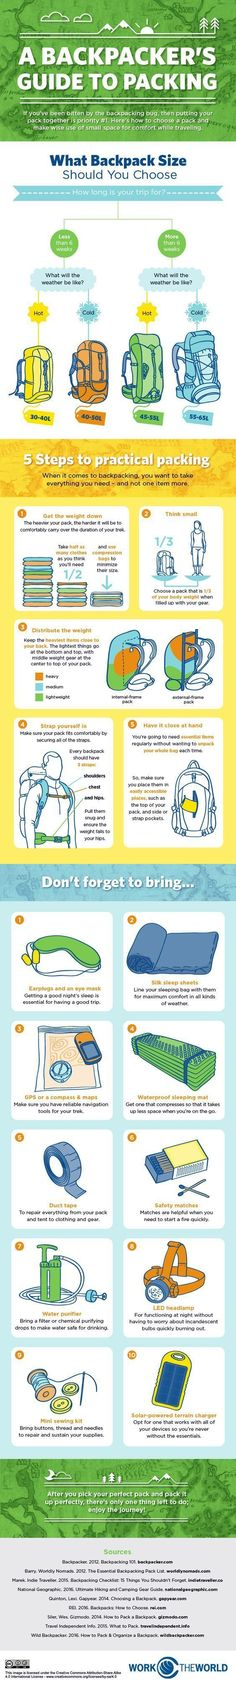 A Backpacker's Guide to Packing - Imgur #TheGreatOutdoors